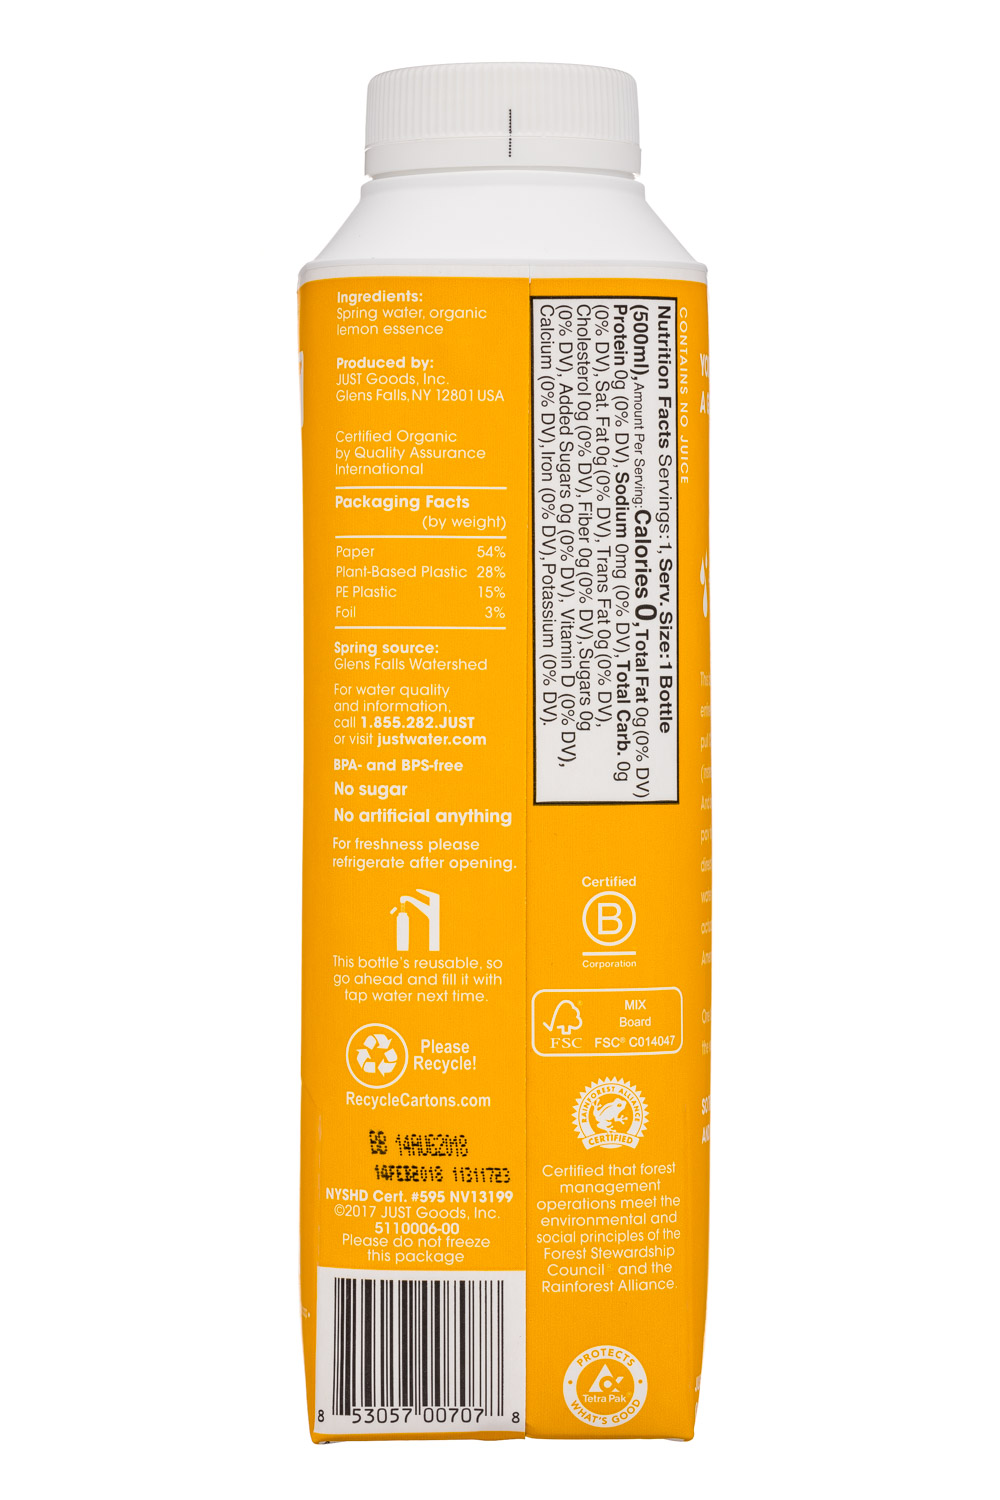 Just Water: JustWater-17oz-Lemon-Facts